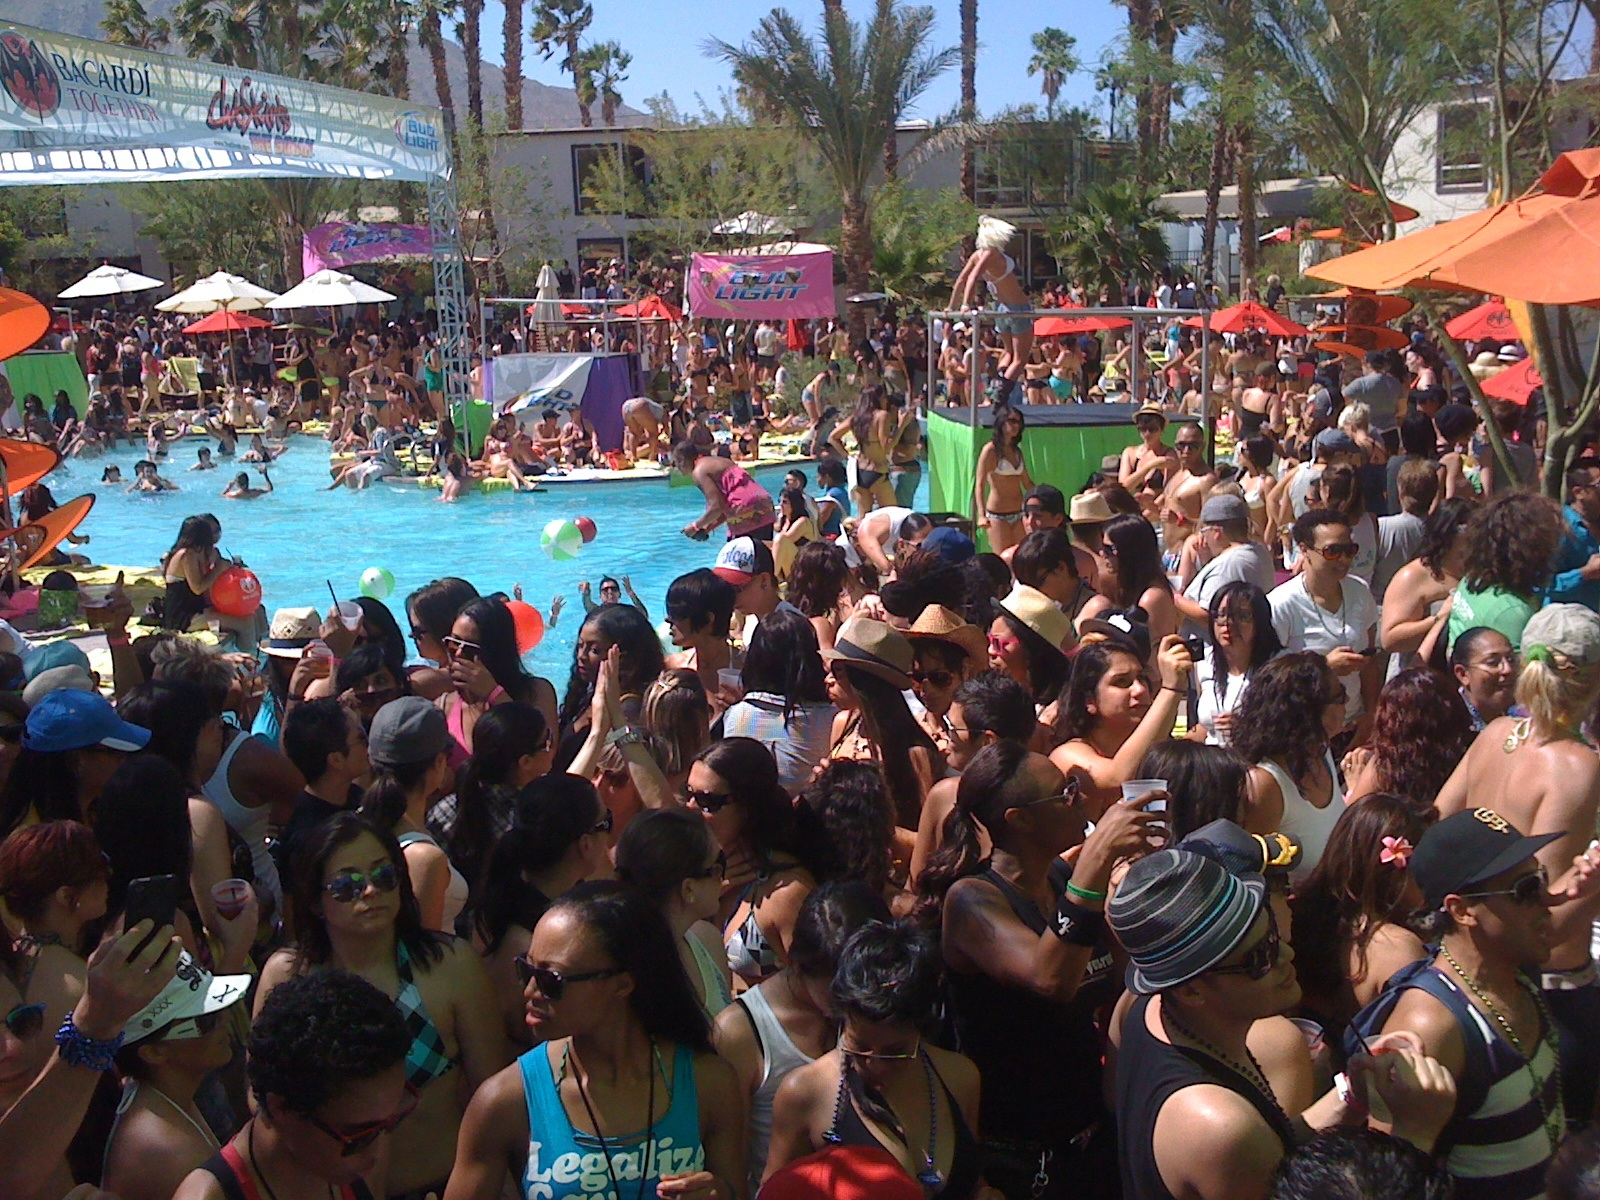 Image credit: Club Skirts Dinah Shore Weekend [ CC BY-SA 3.0 ], from Wikimedia Commons